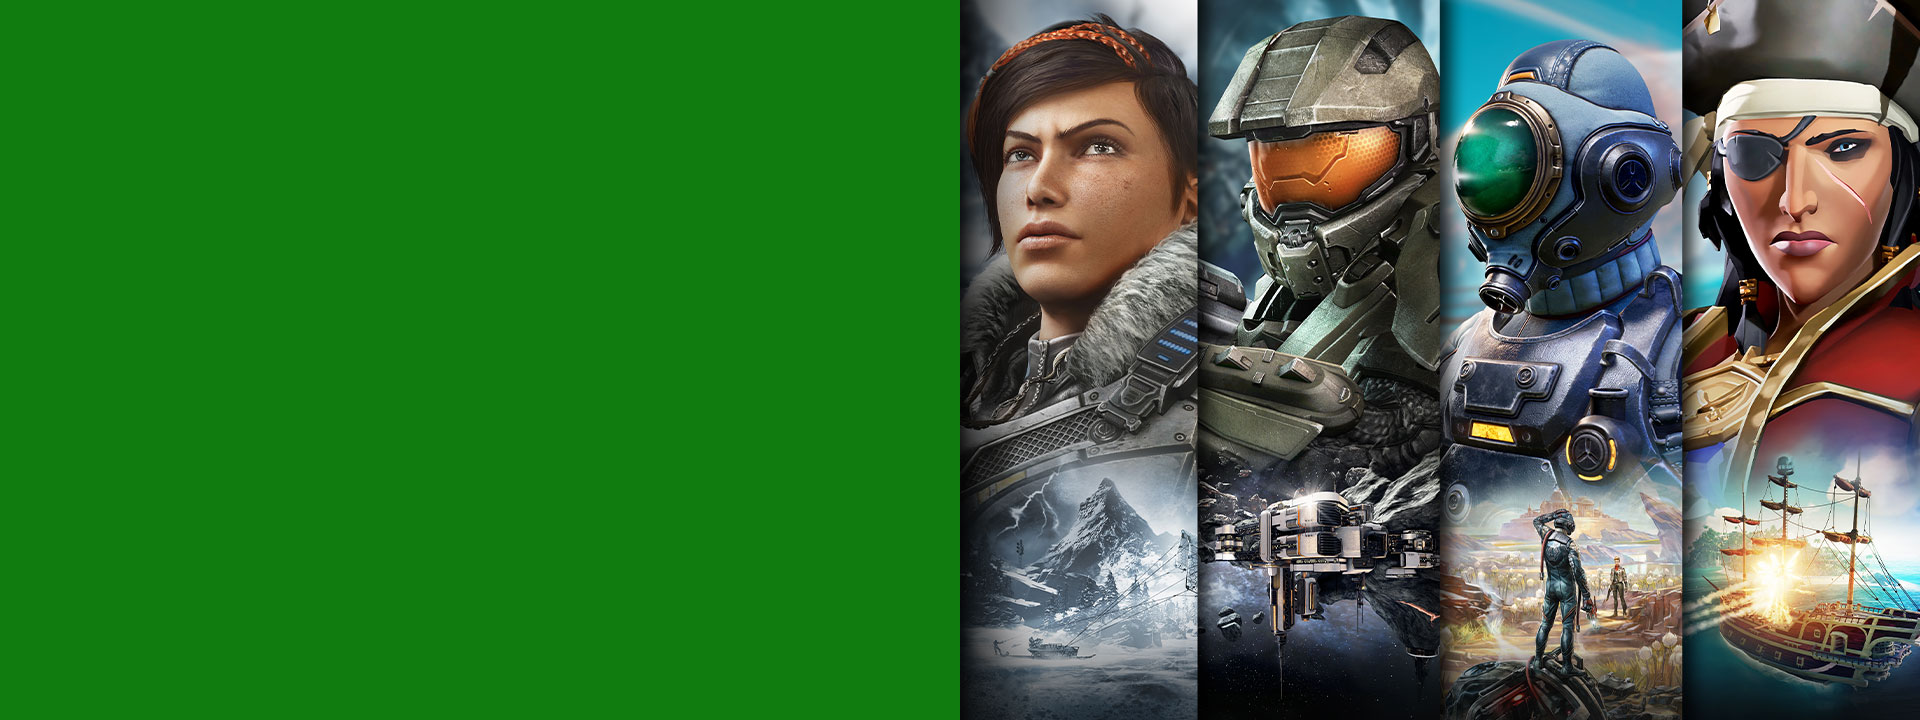 Xbox Game Pass-Spielcharektere aus Gears 5, Halo, The Outer Worlds und Sea of Thieves.